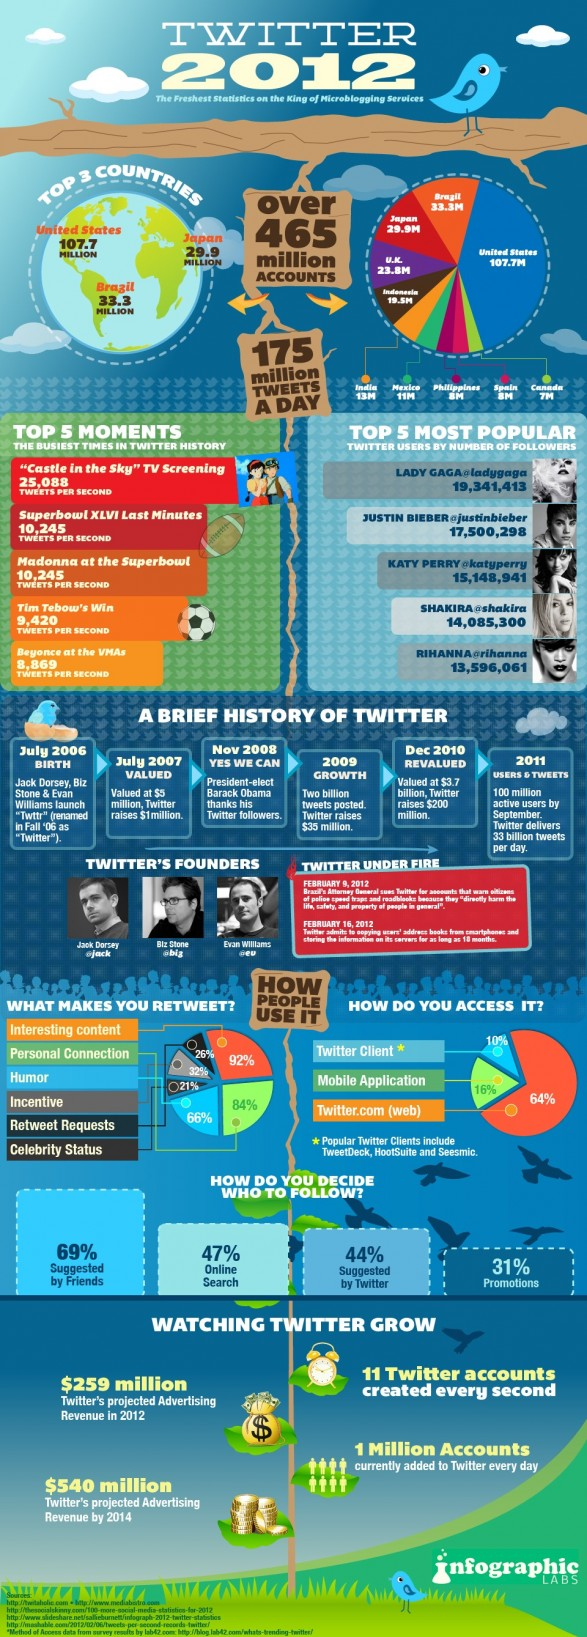 Twitter-Stats-2012-infographic